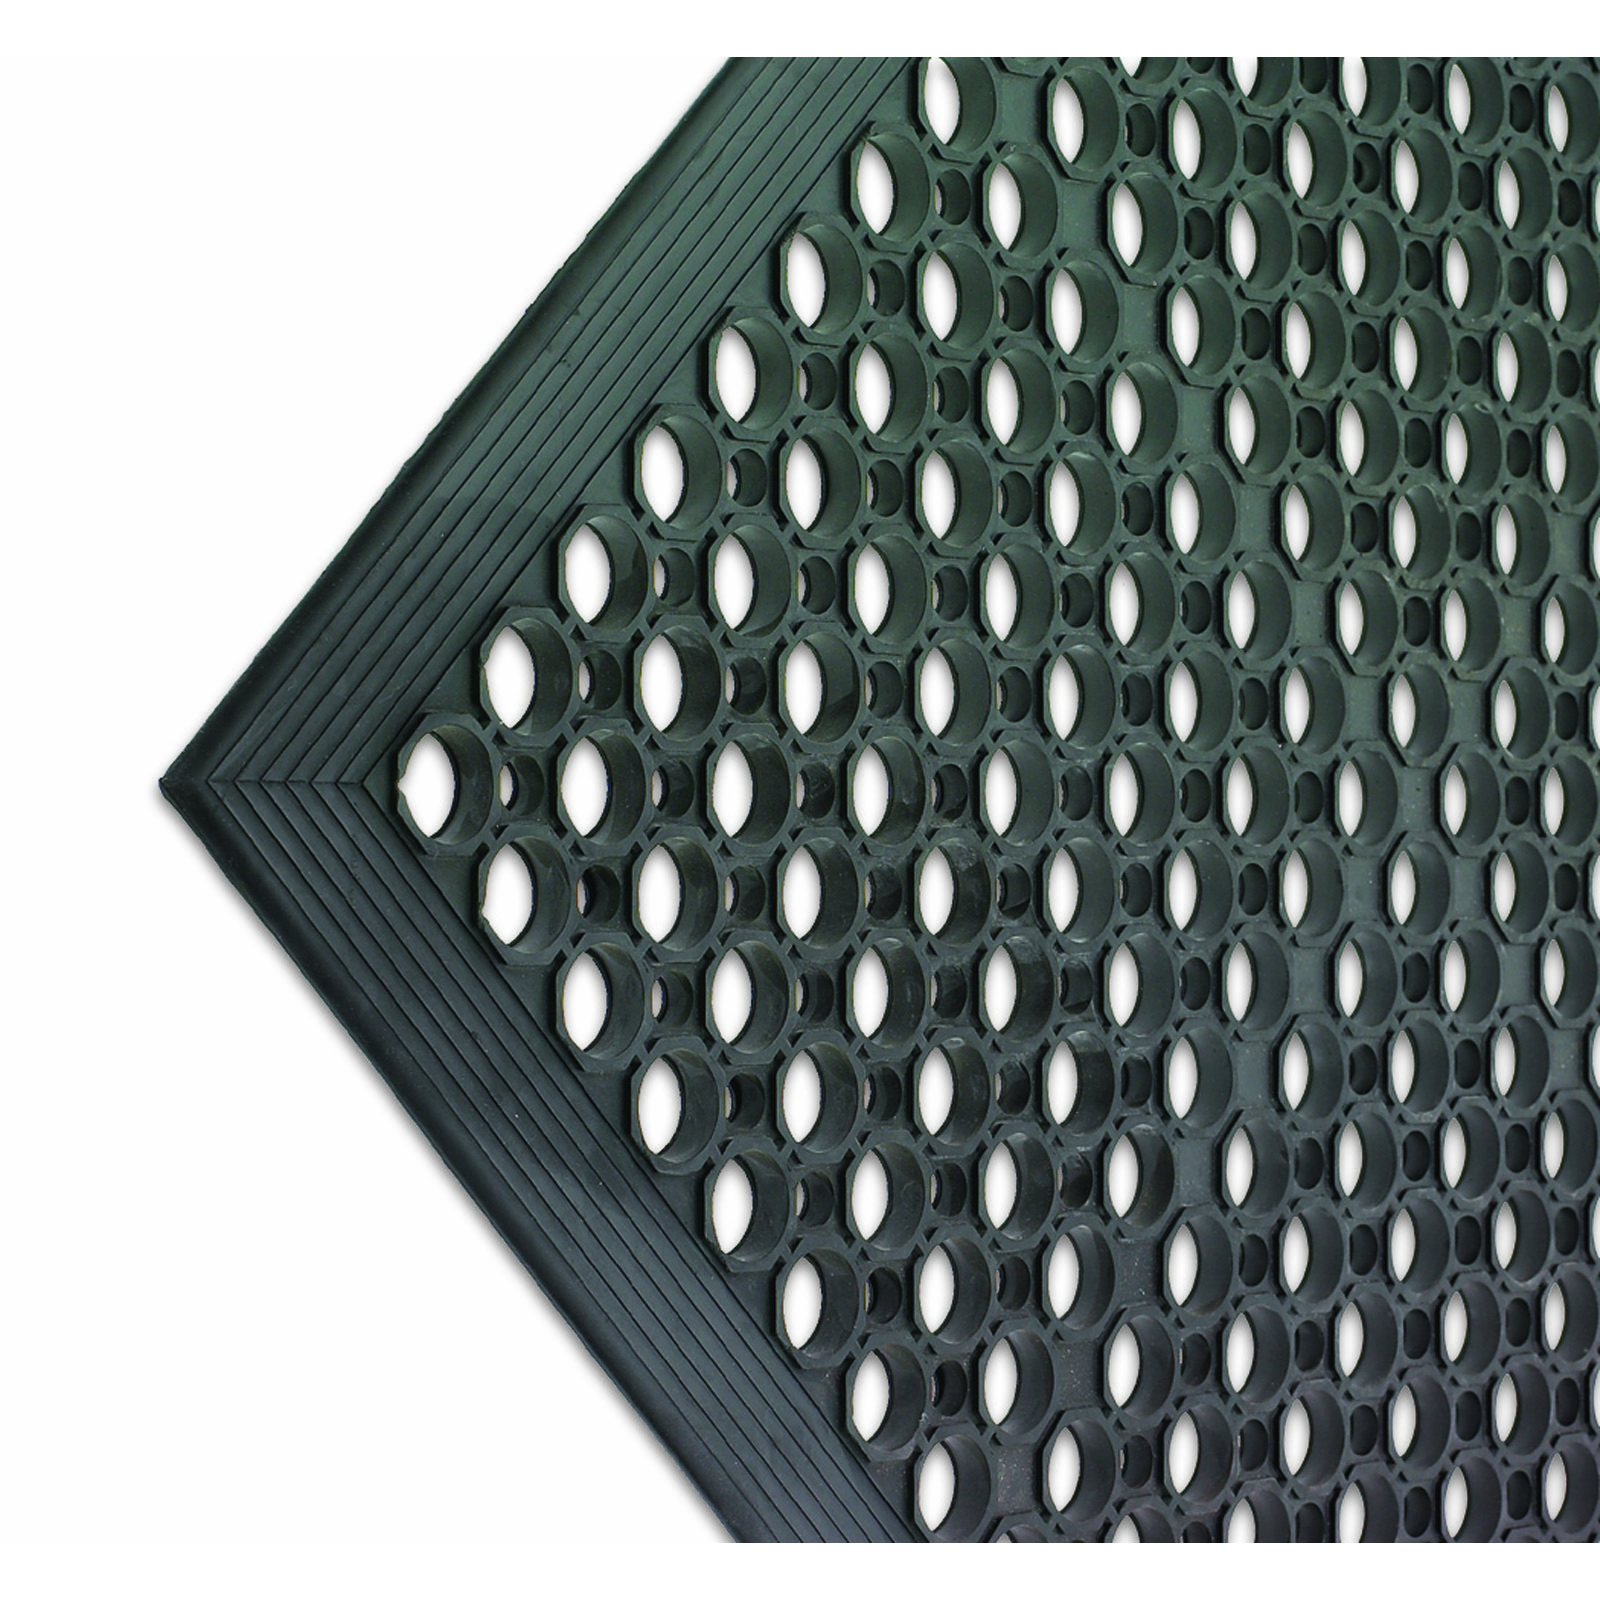 San Jamar KM1100 floor mat, anti-fatigue